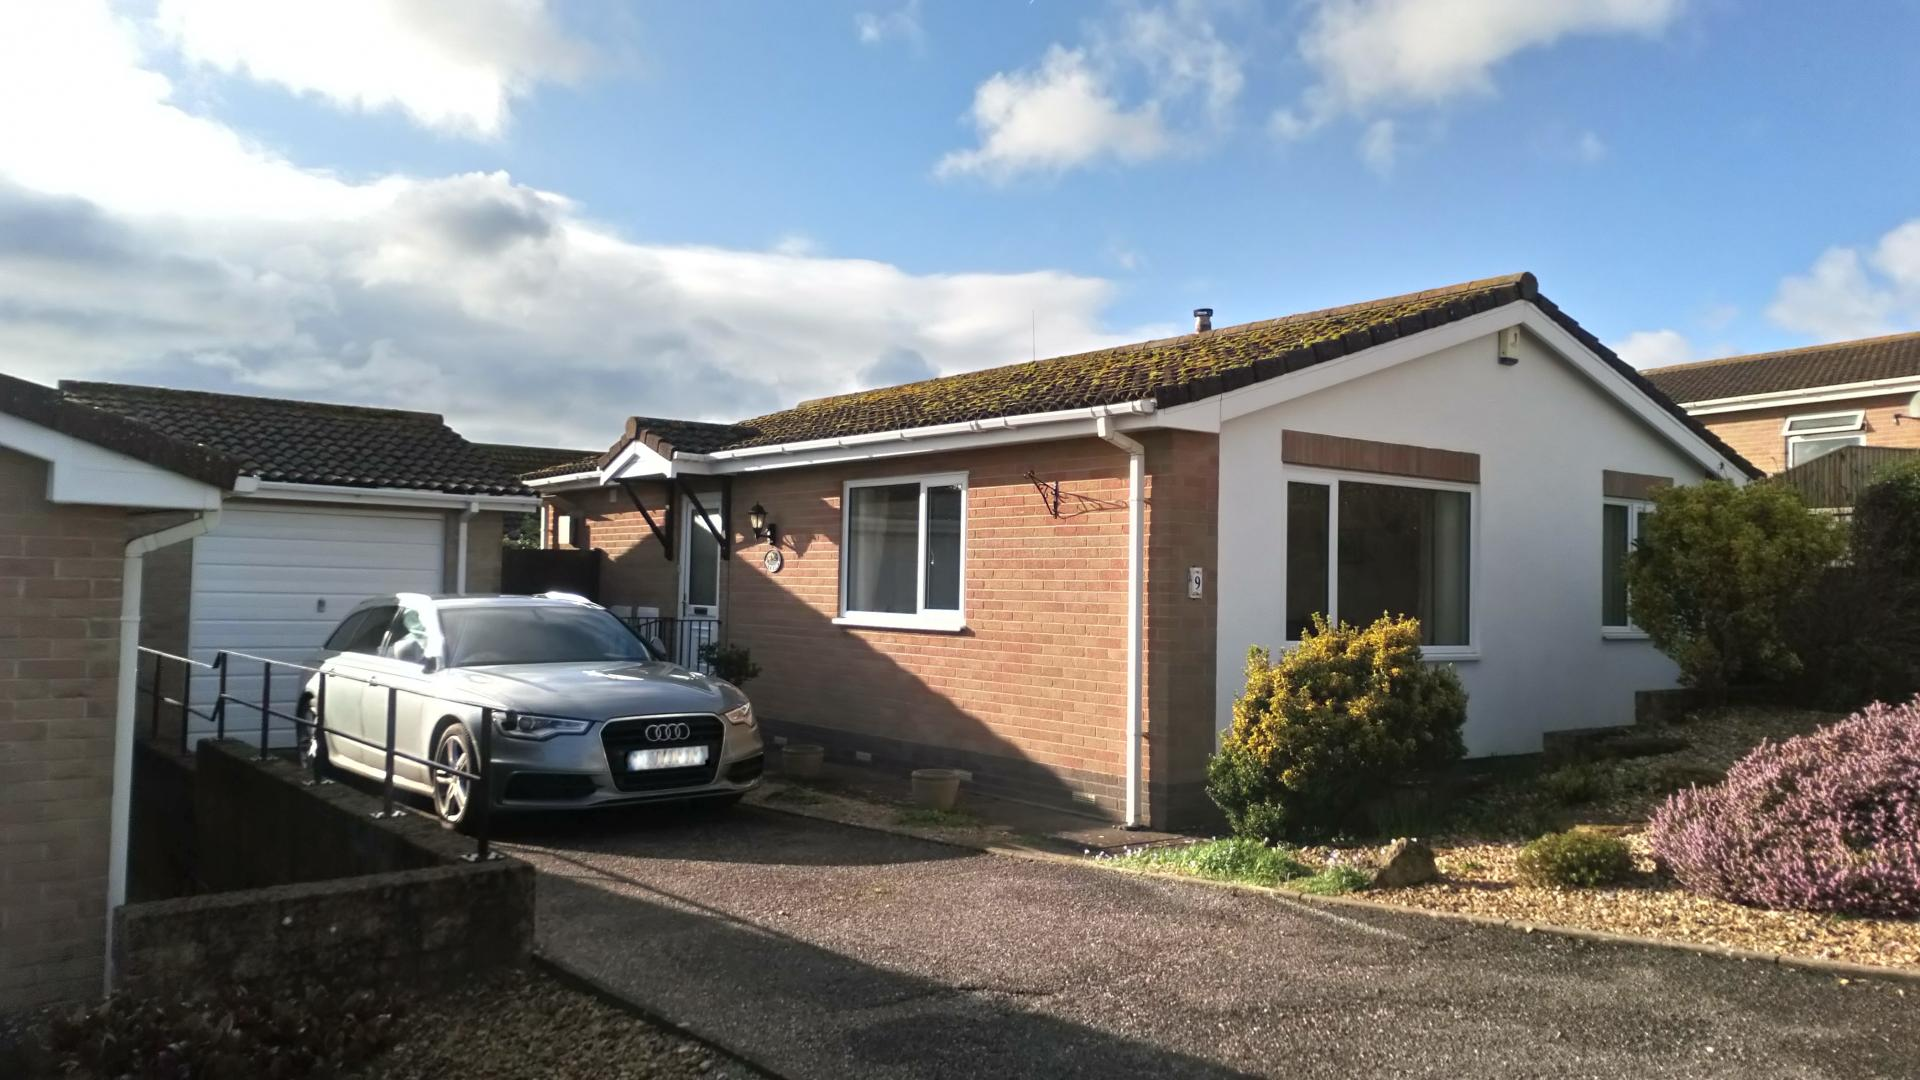 2 Bedrooms Bungalow for sale in Hazel Close, Seaton